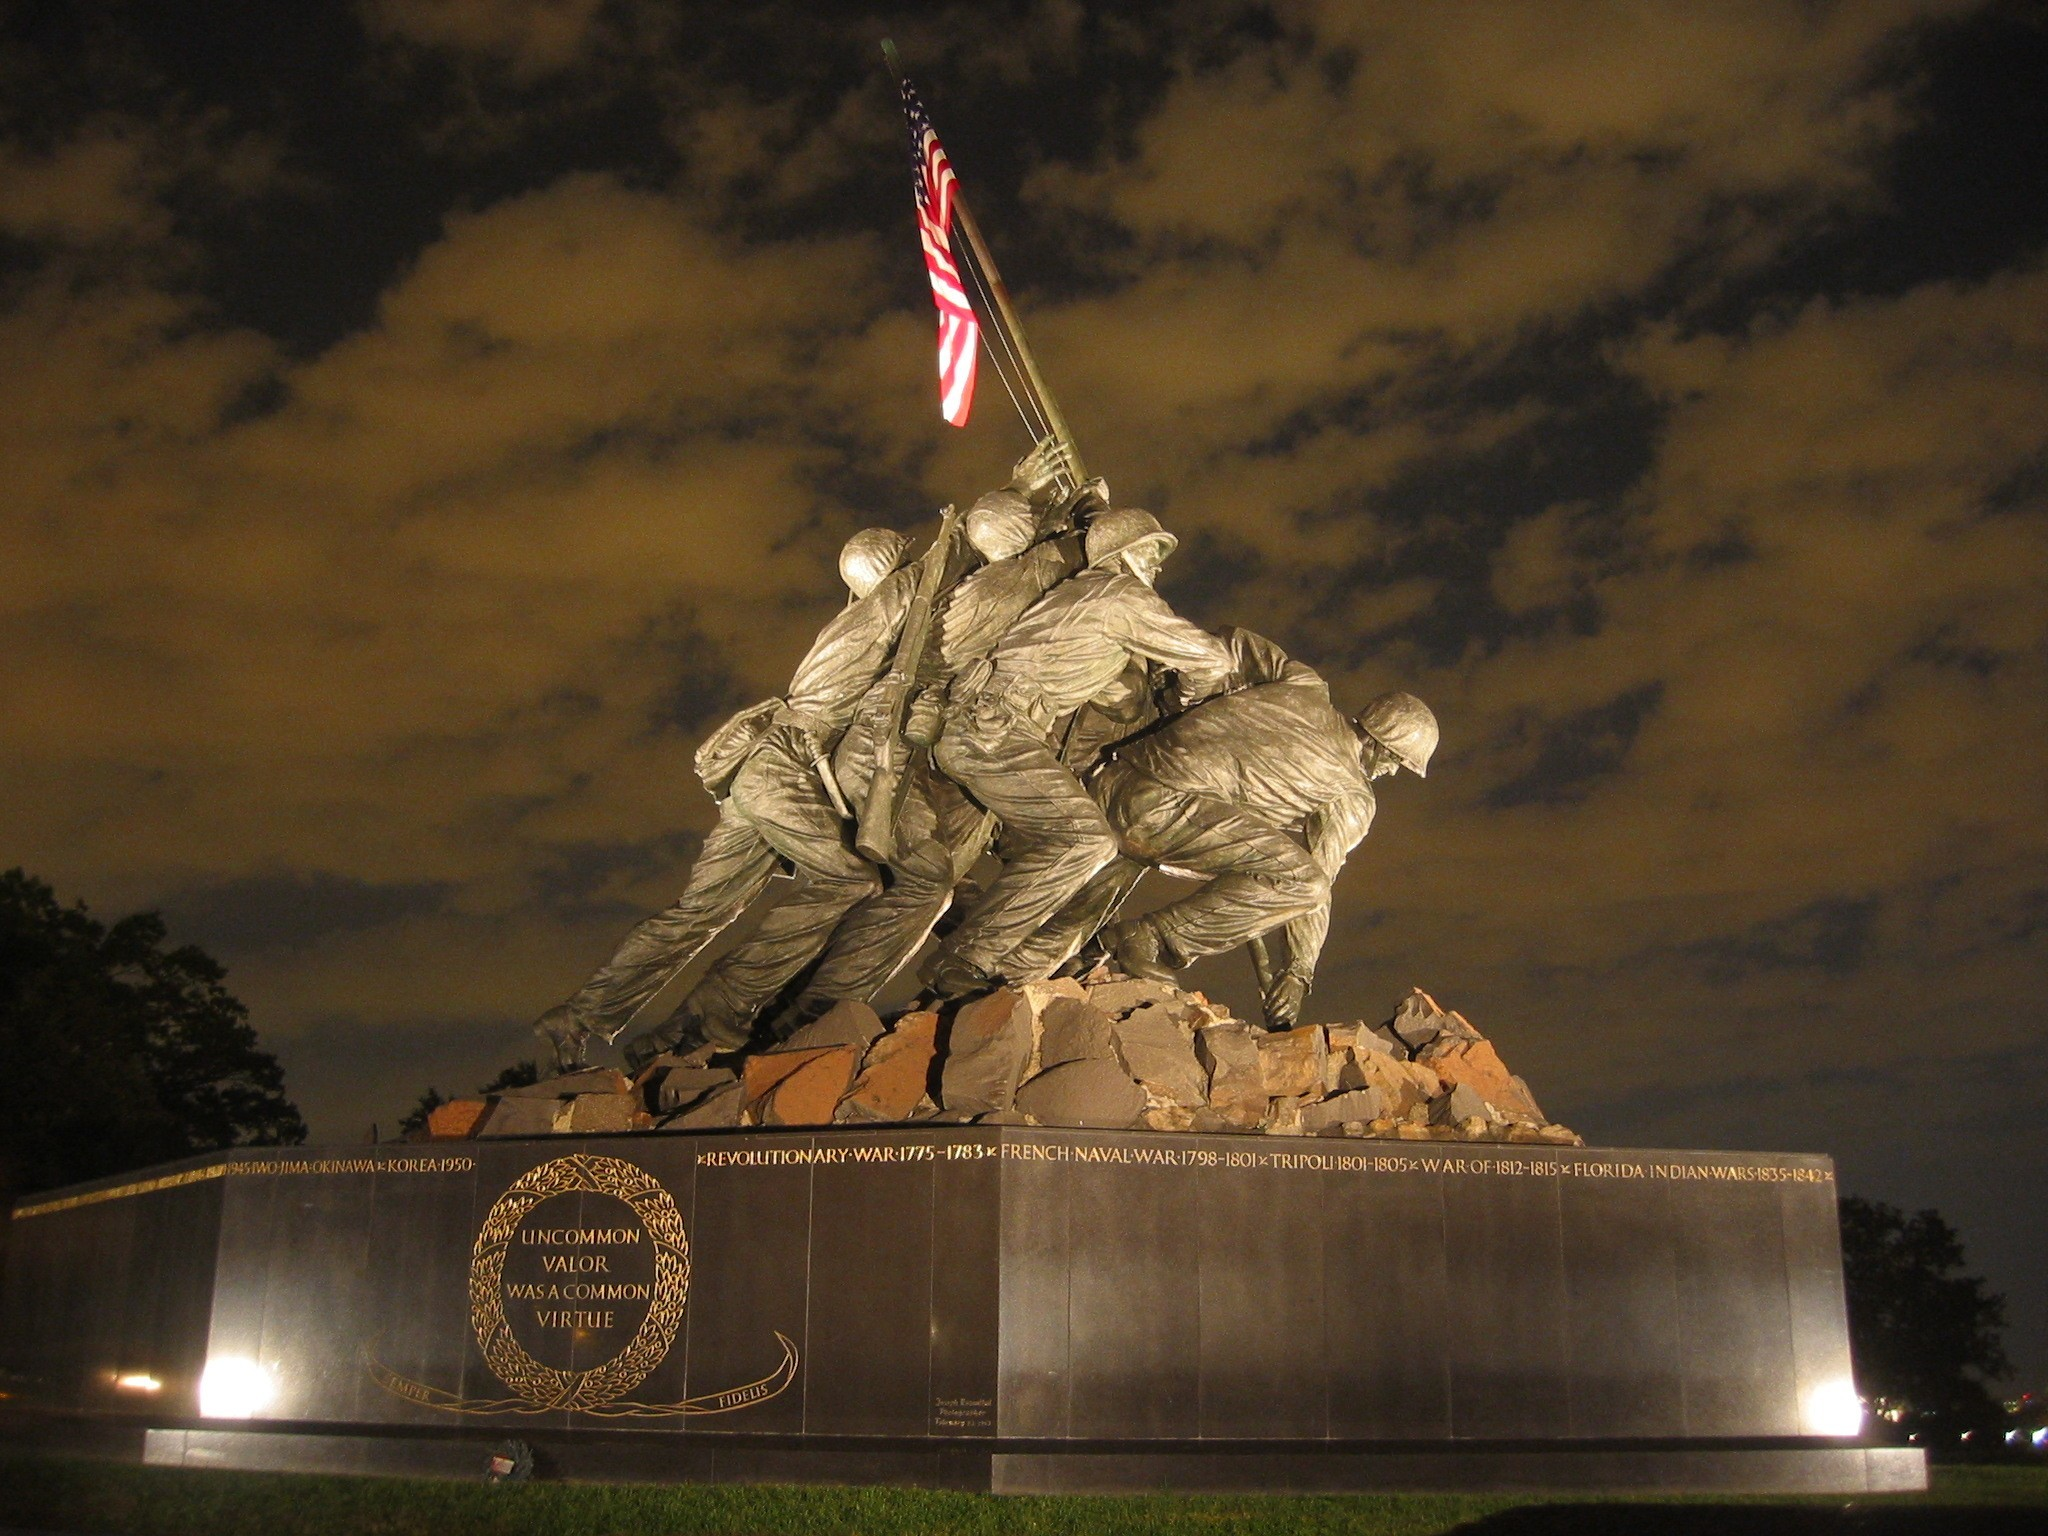 … military united states marine corps wallpapers desktop phone …